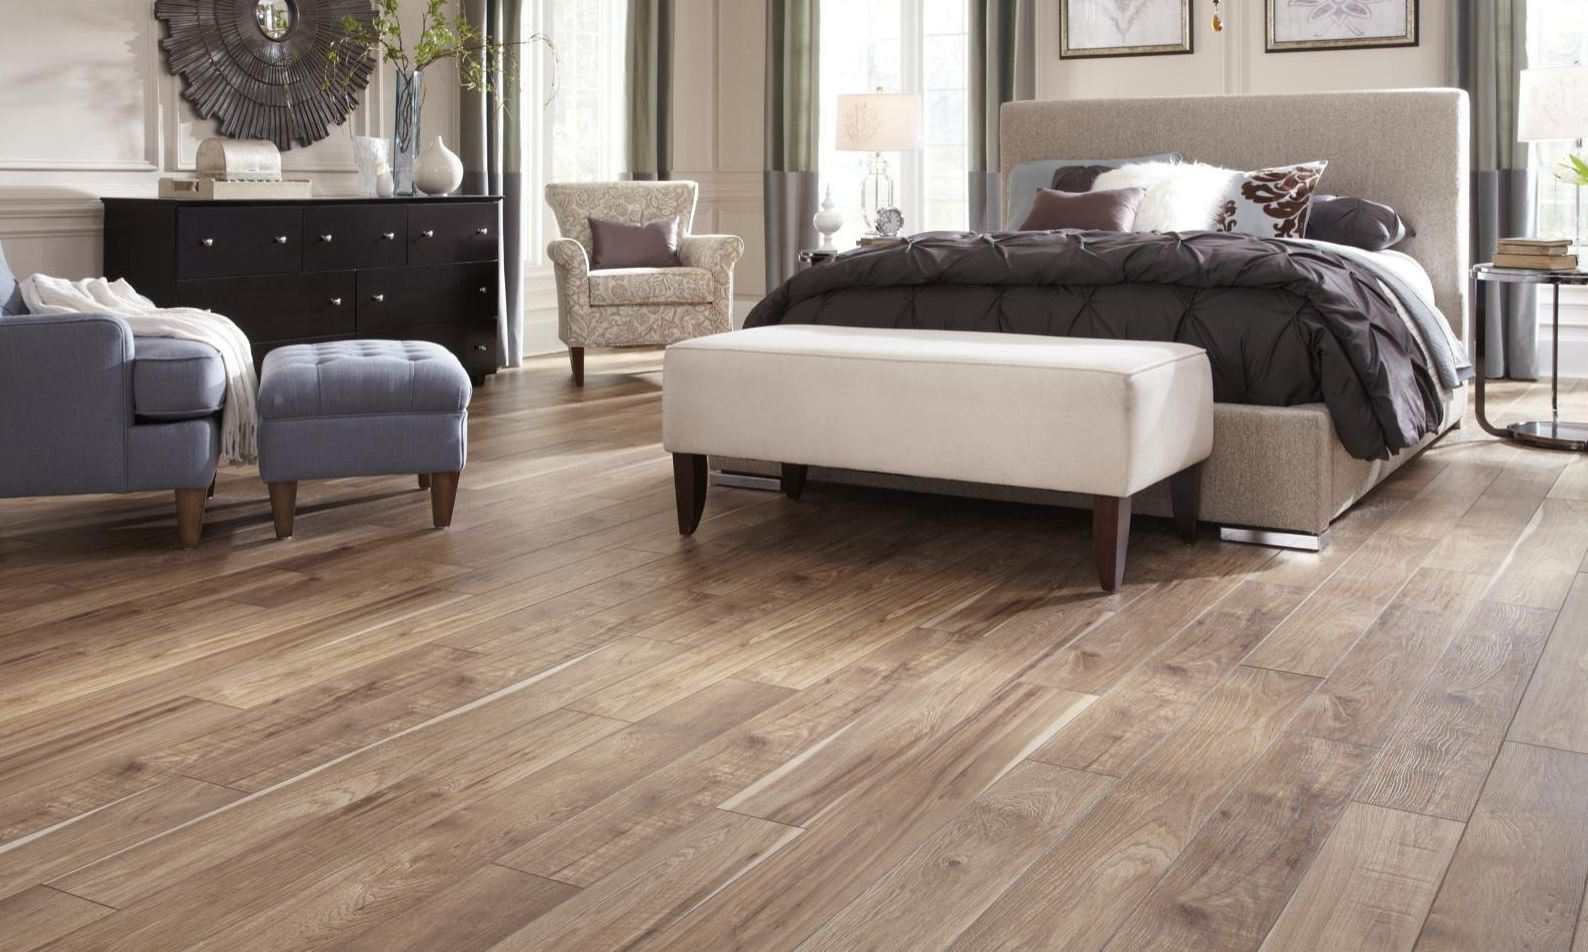 hardwood flooring manufacturers list of luxury vinyl tile and plank flooring companies with regard to mannington adura luxury vinyl plank flooring